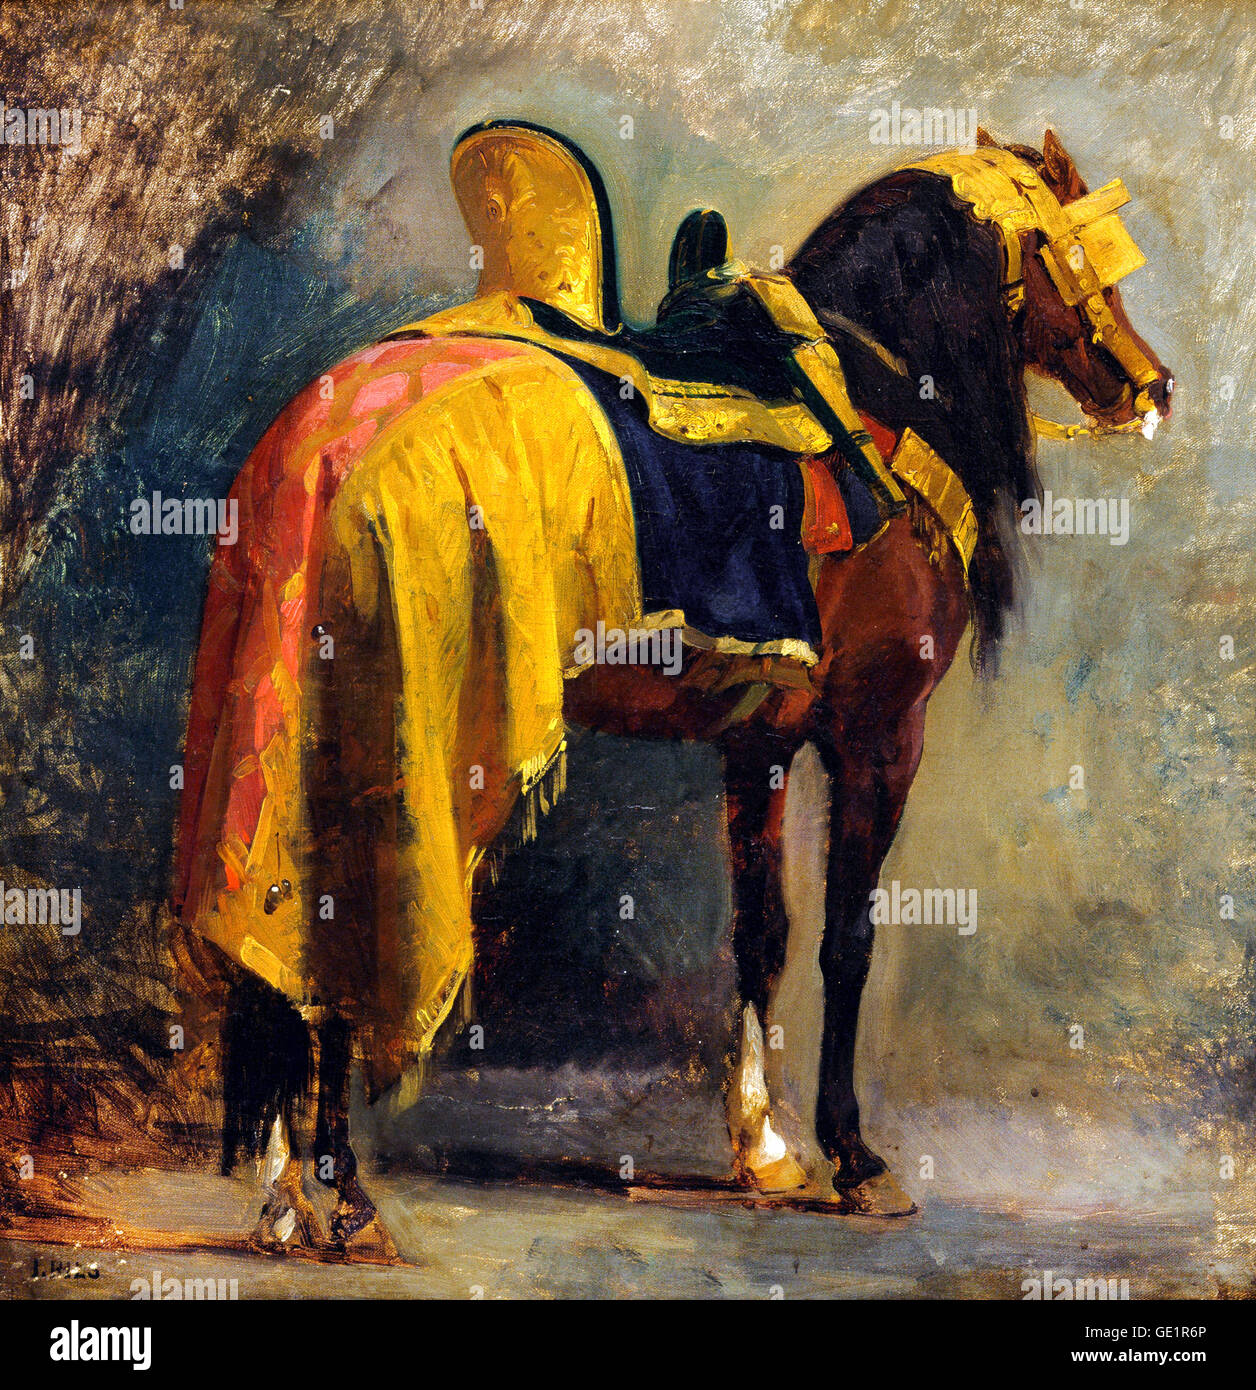 Isidore Pils, Horse Caparisoned. Circa 1860. Oil on canvas. Art Gallery of New South Wales, Sydney, Australia. - Stock Image